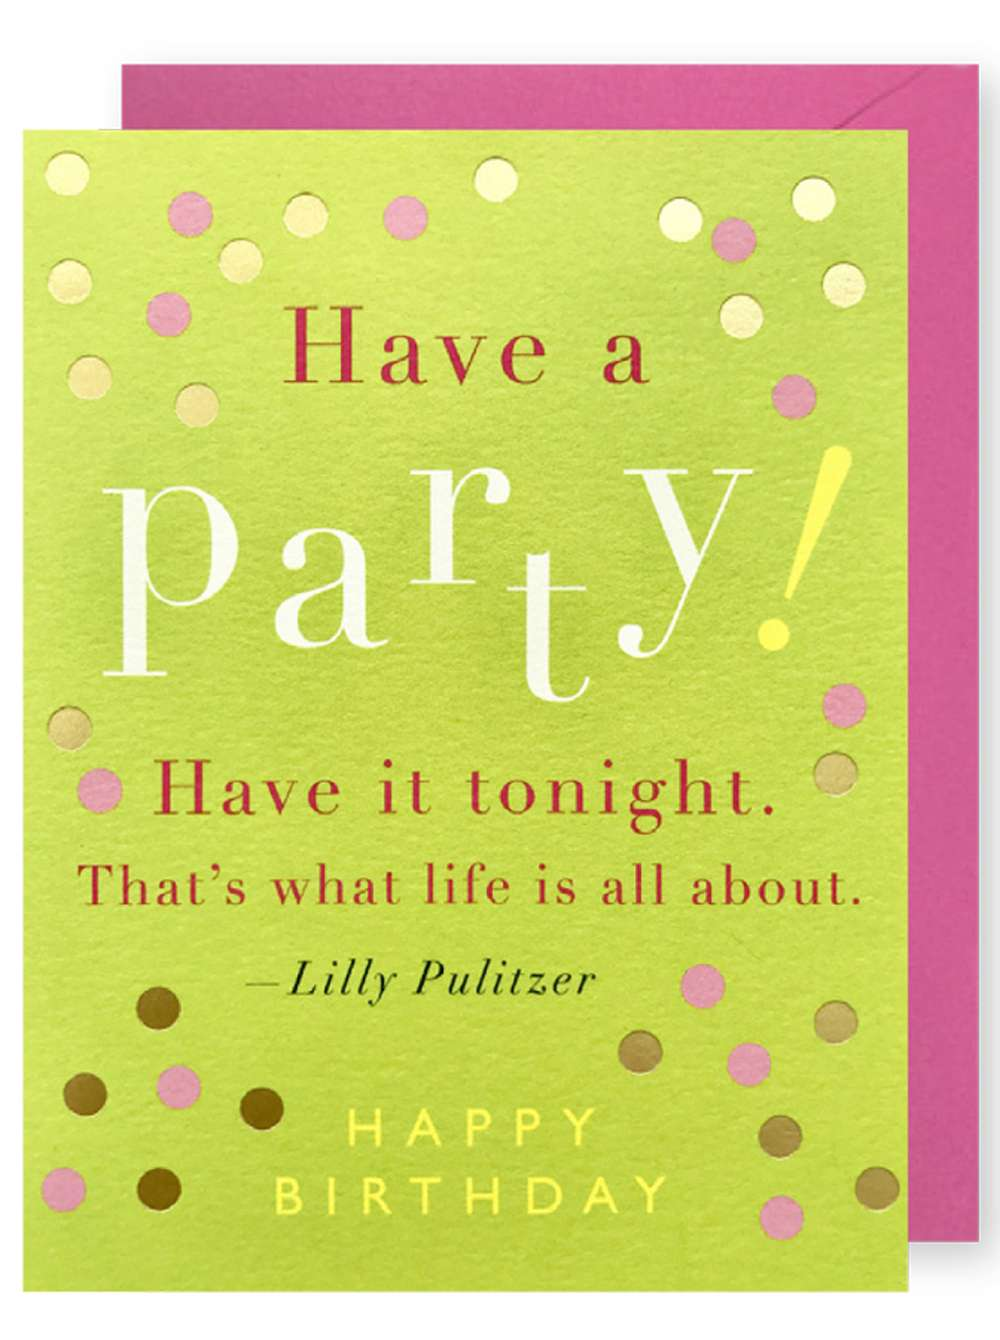 HAVE A PARTY  THAT'S WHAT LIFE IS ALL ABOUT CARD Thumbnail